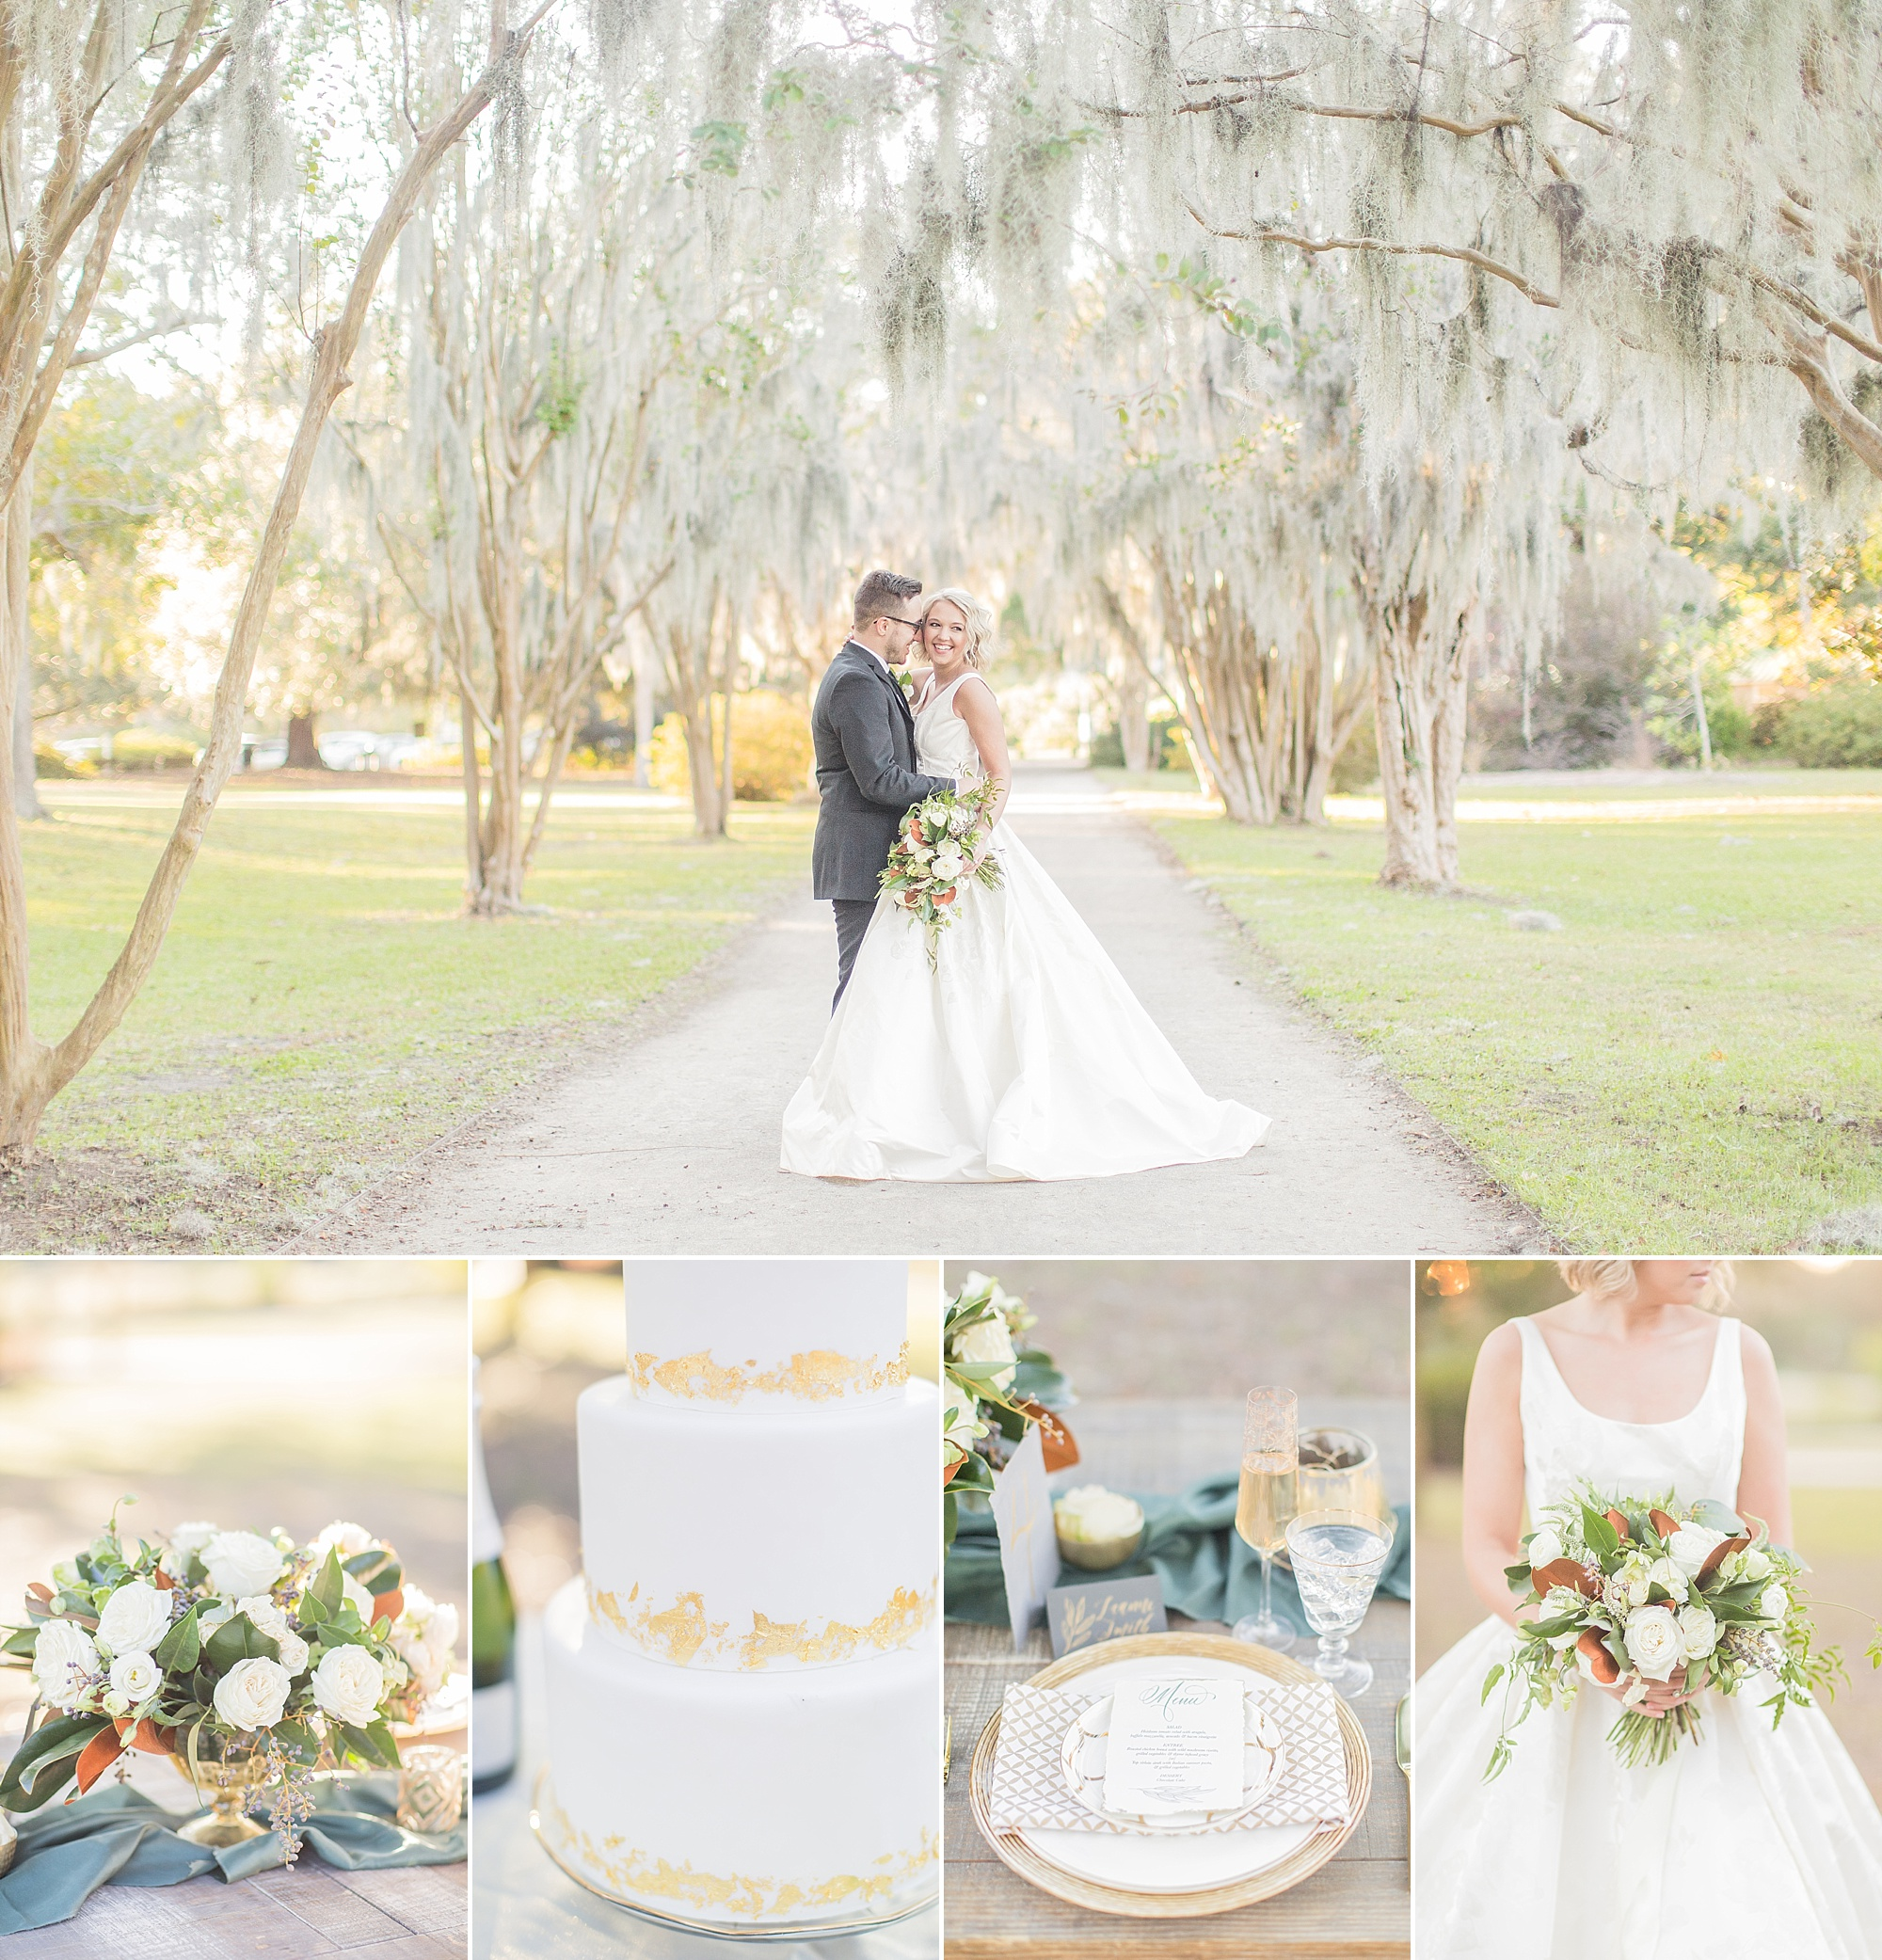 charleston-wedding-inspiration-mississippi-photographer_0001.jpg